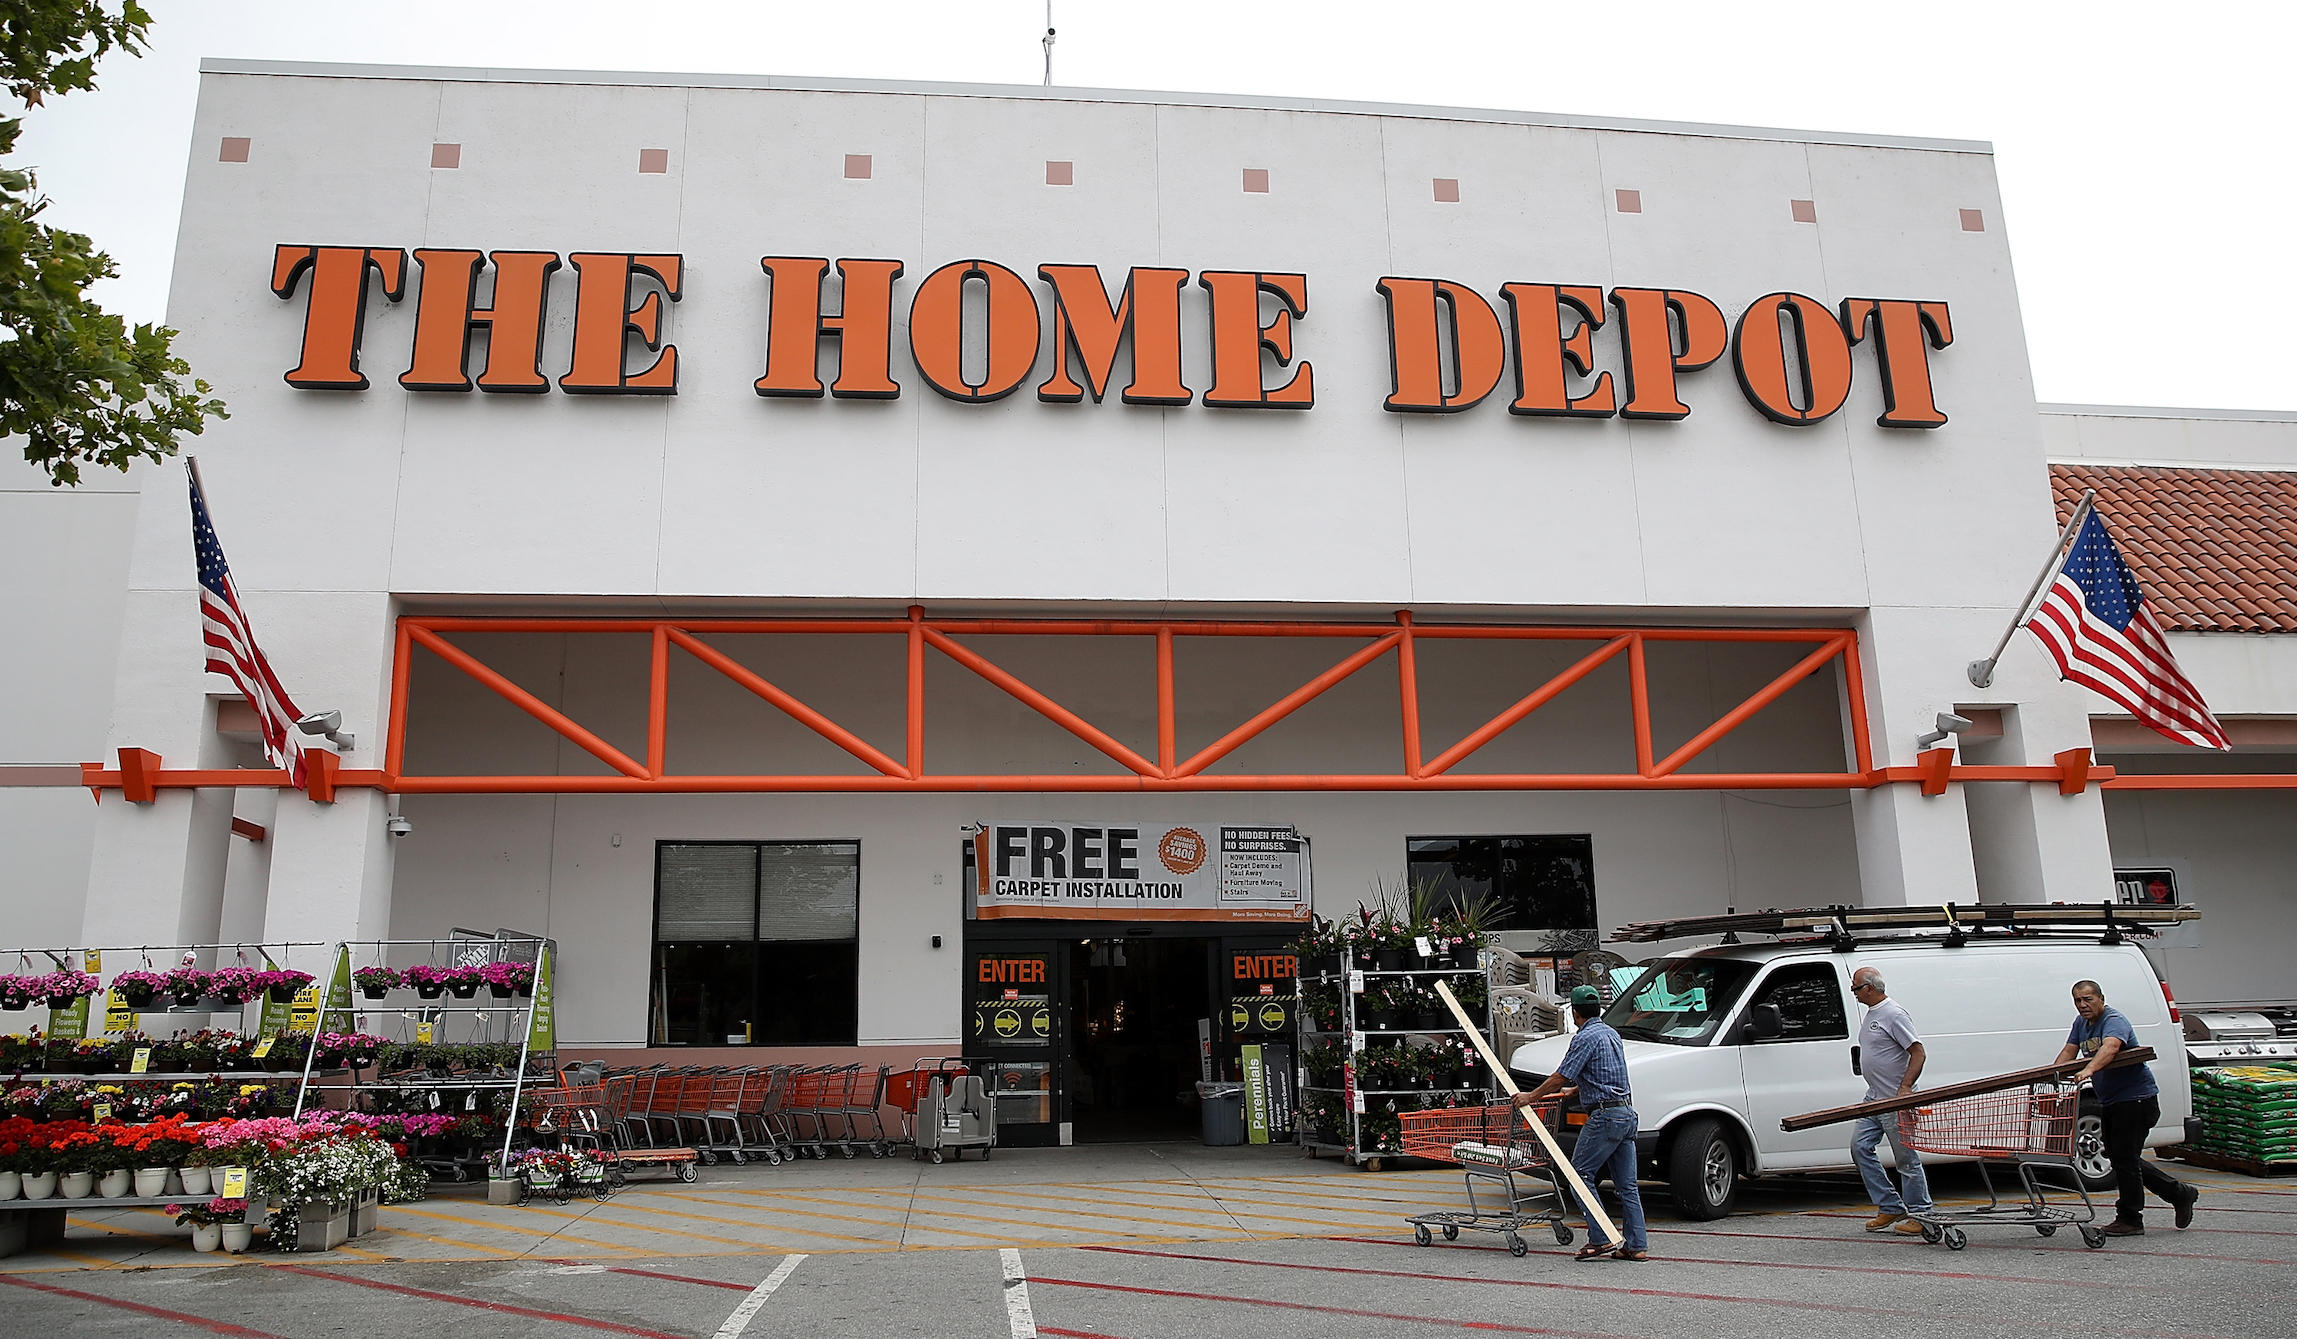 Home Depot fires 70-year-old Army veteran for confronting